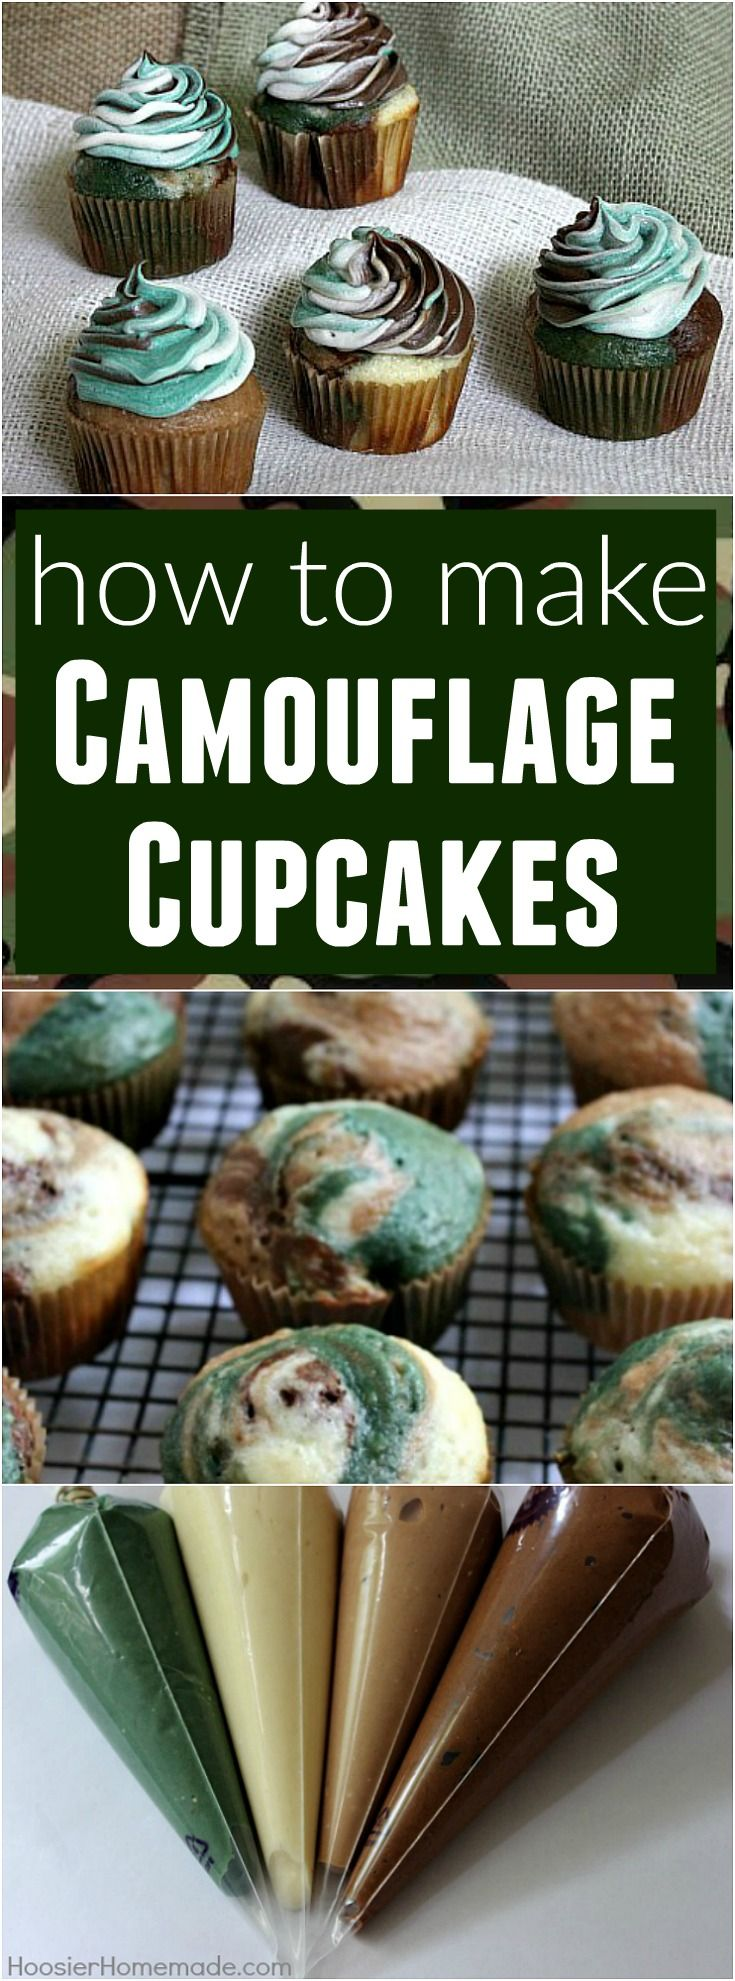 Surprise Dad with these Father's Day Cupcakes! Camouflage Cupcakes with FREE Printable Father's Day Cupcake Toppers!